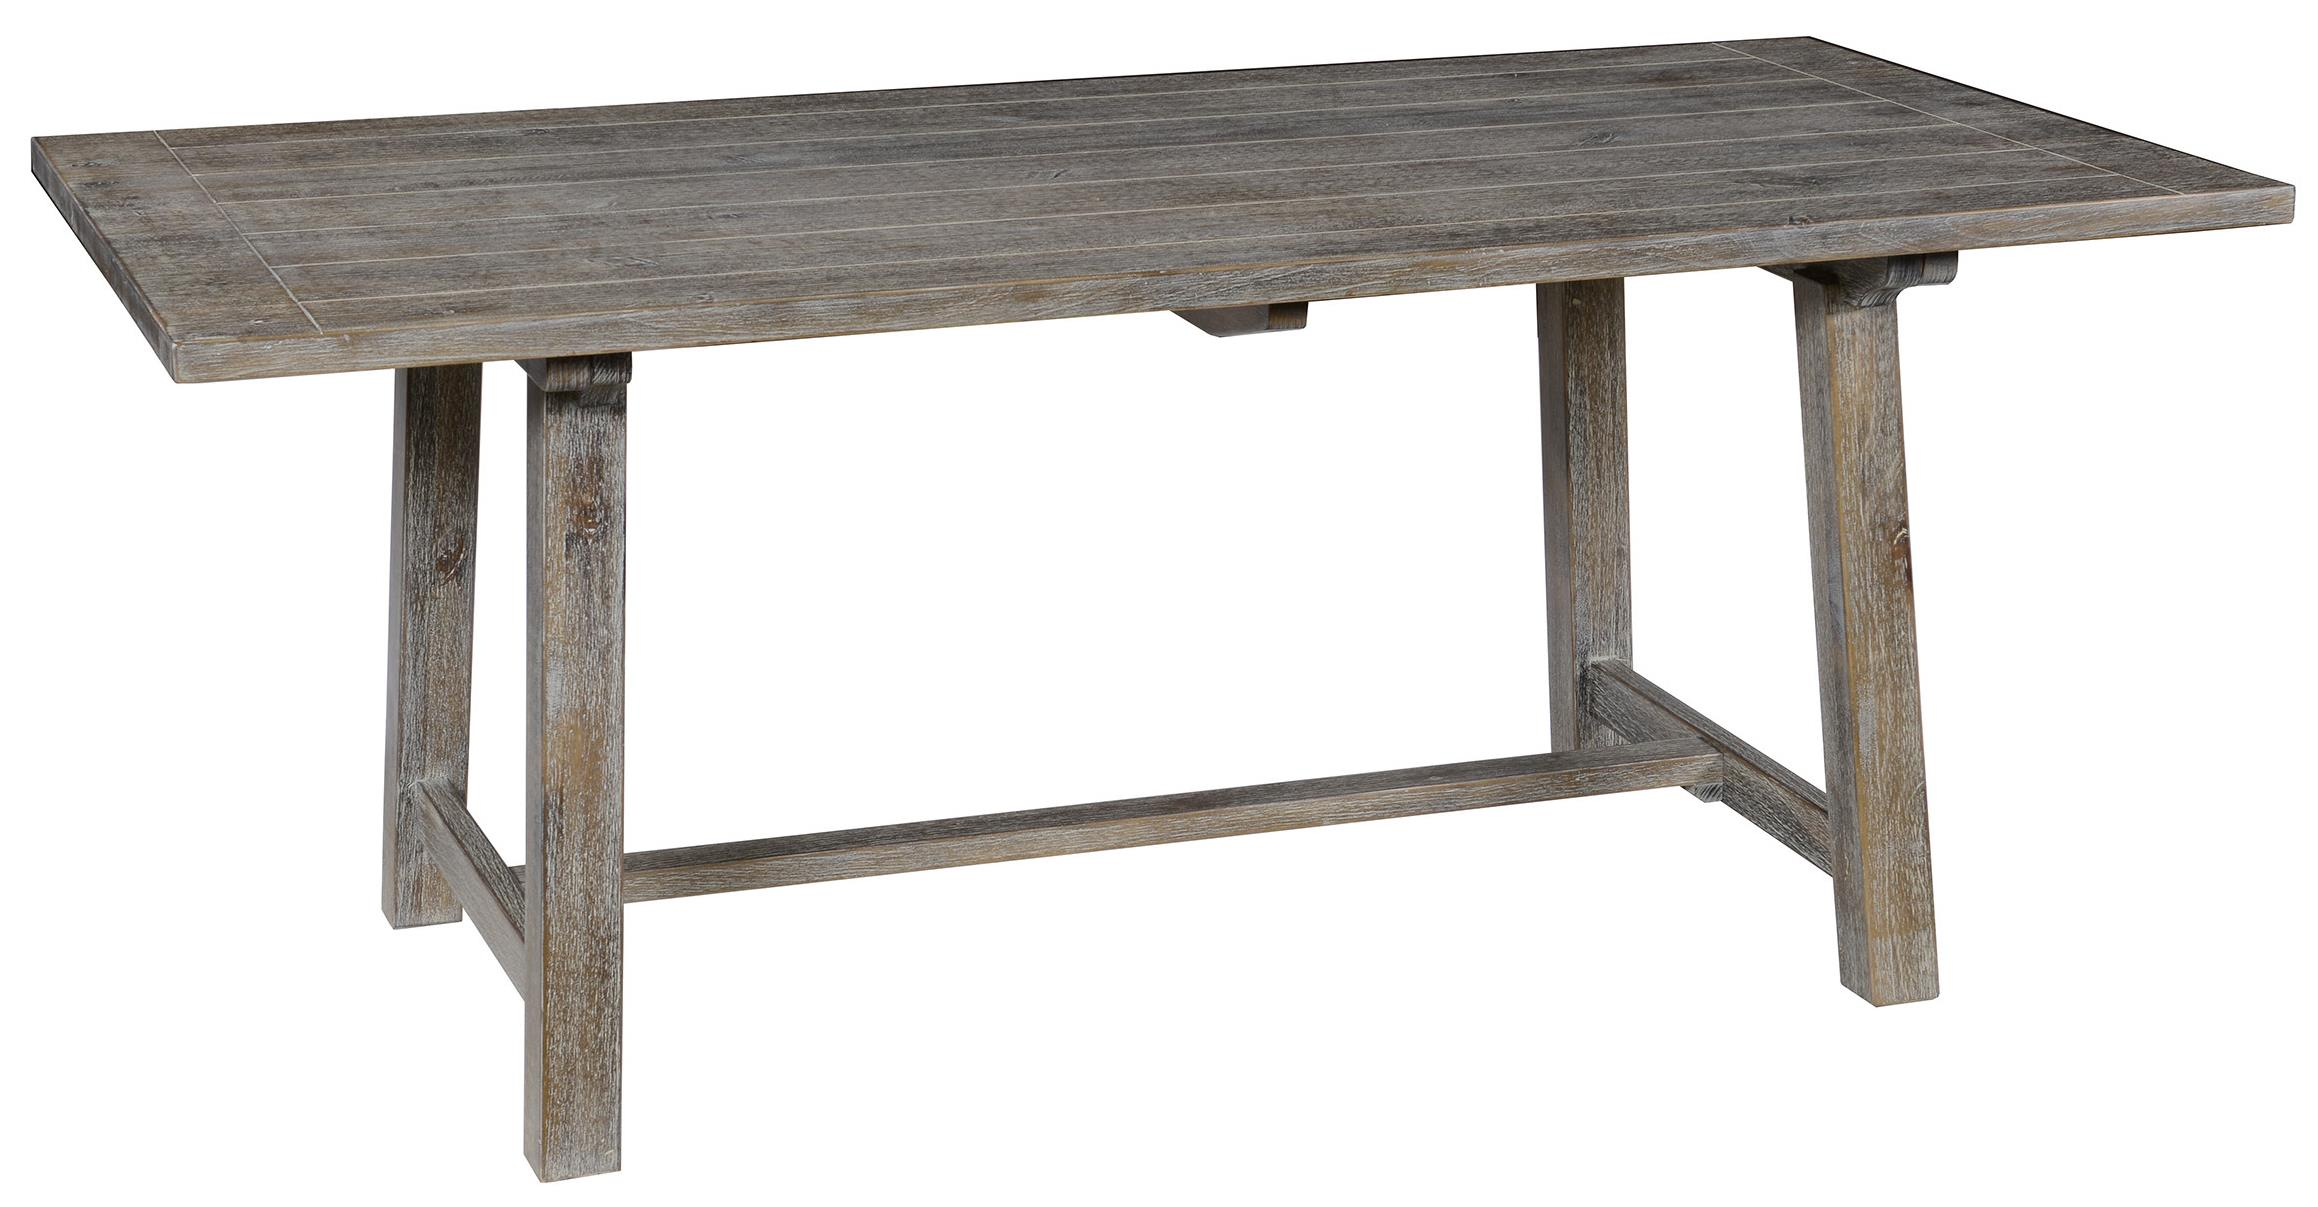 Classic home maxwell pine dining table with trestle base for Classic home furniture jacksonville fl